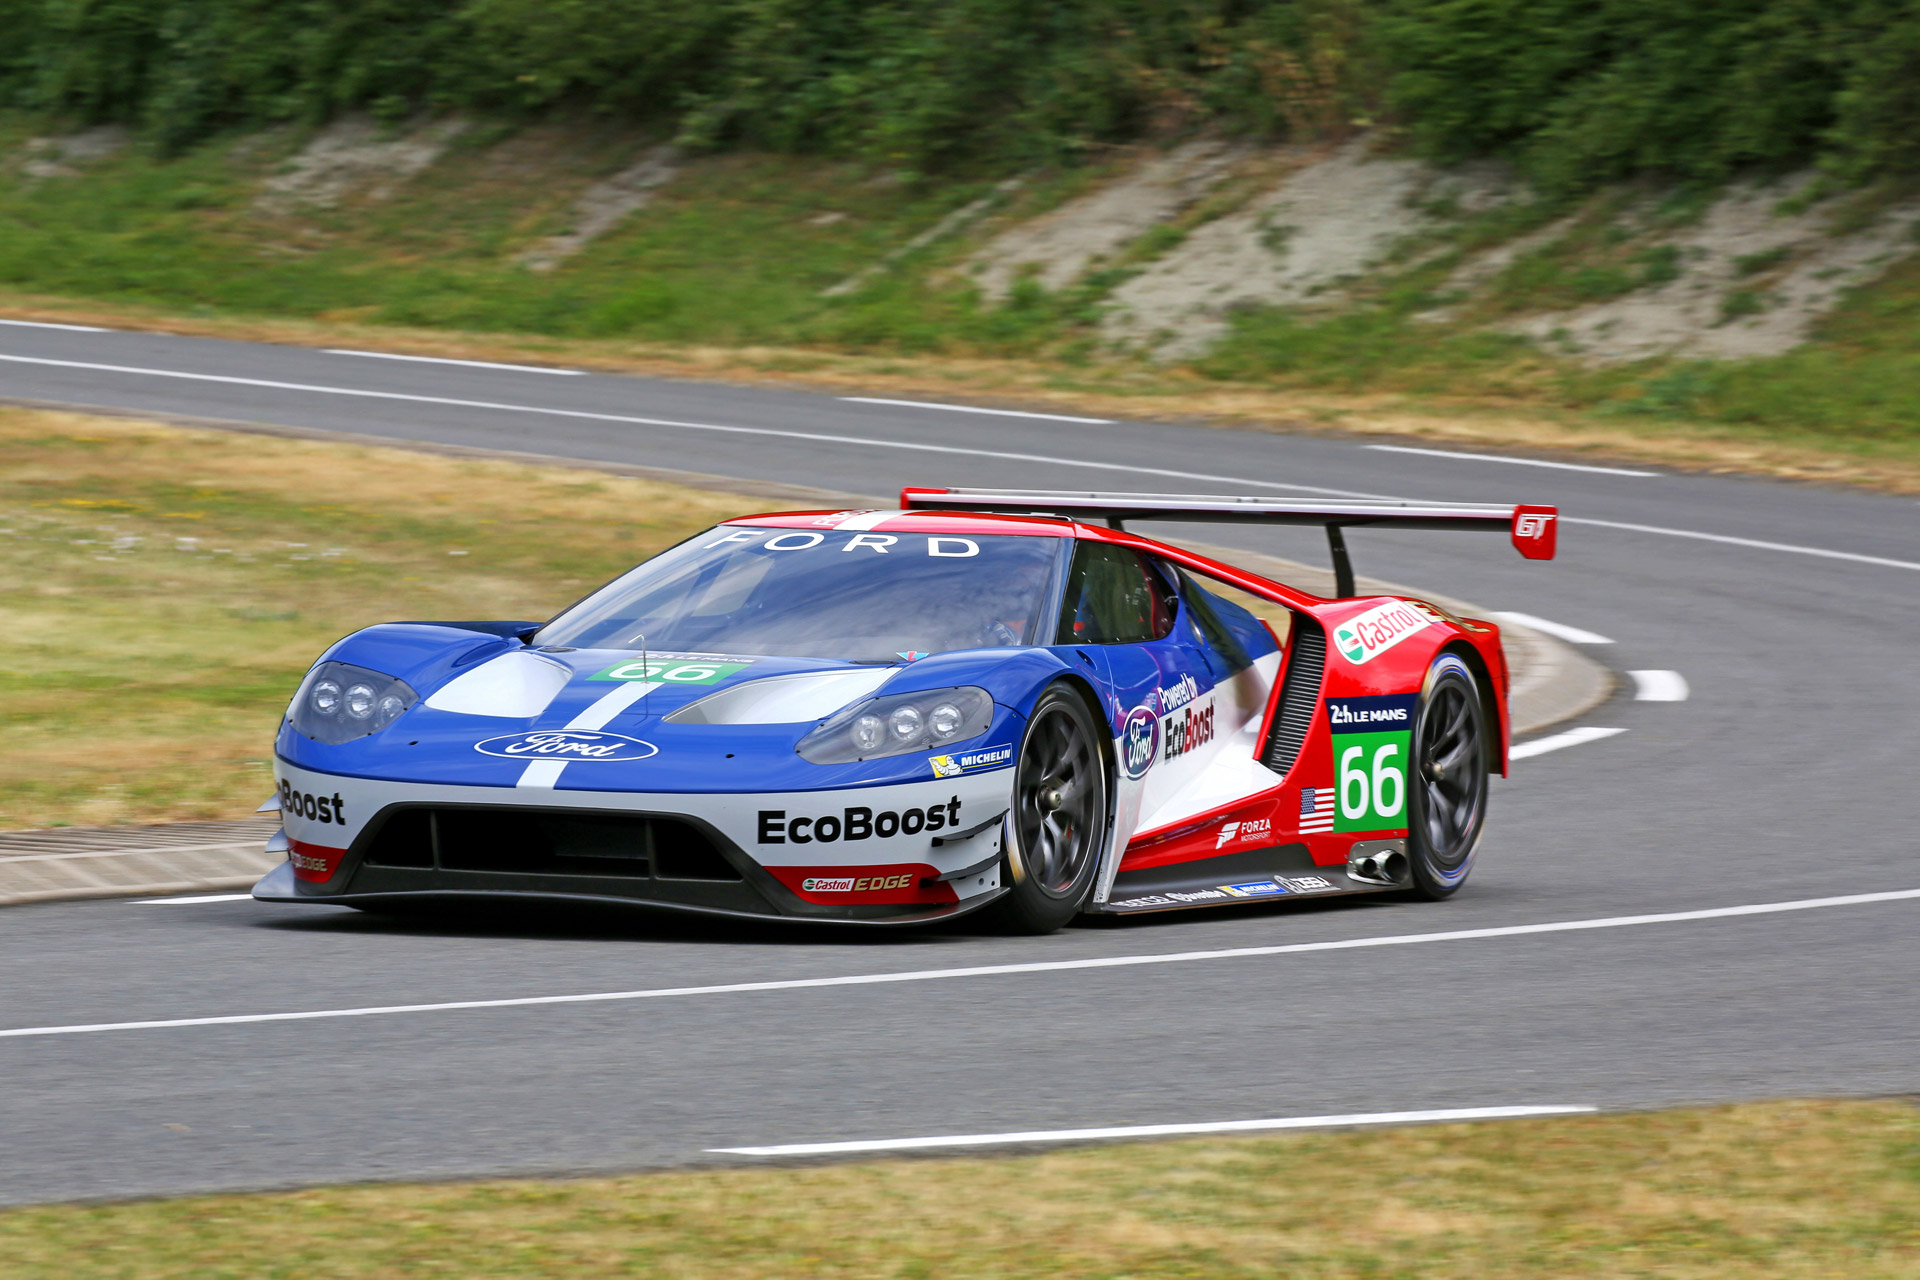 Ford Returning To Le Mans In 2016 With GT Supercar: Official